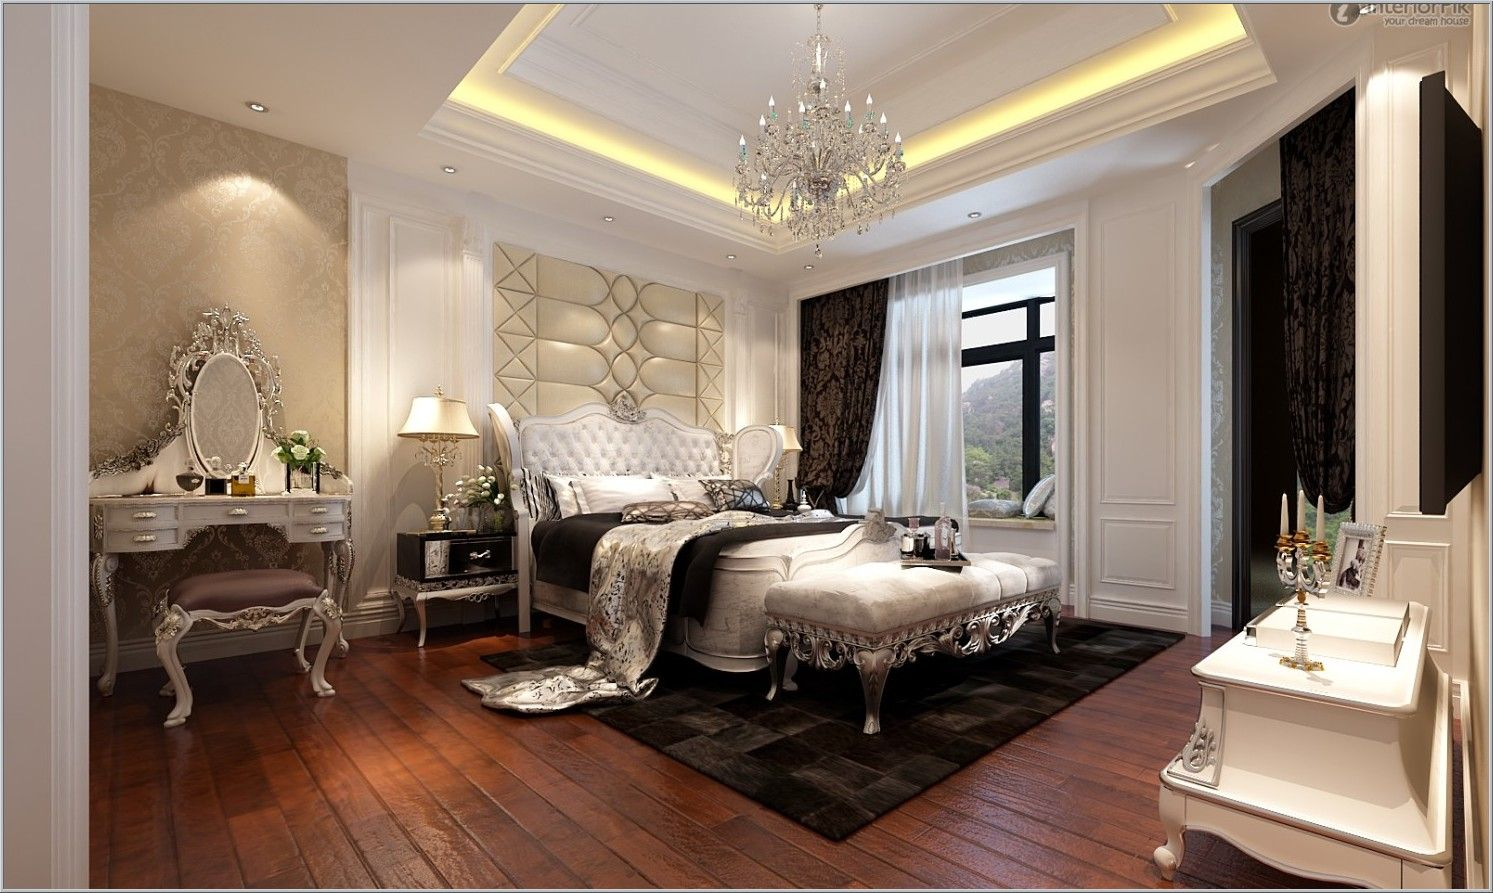 European Bedroom Designs Endearing European Modern Bedroom I See A Artistic Headboard Decorative Inspiration Design